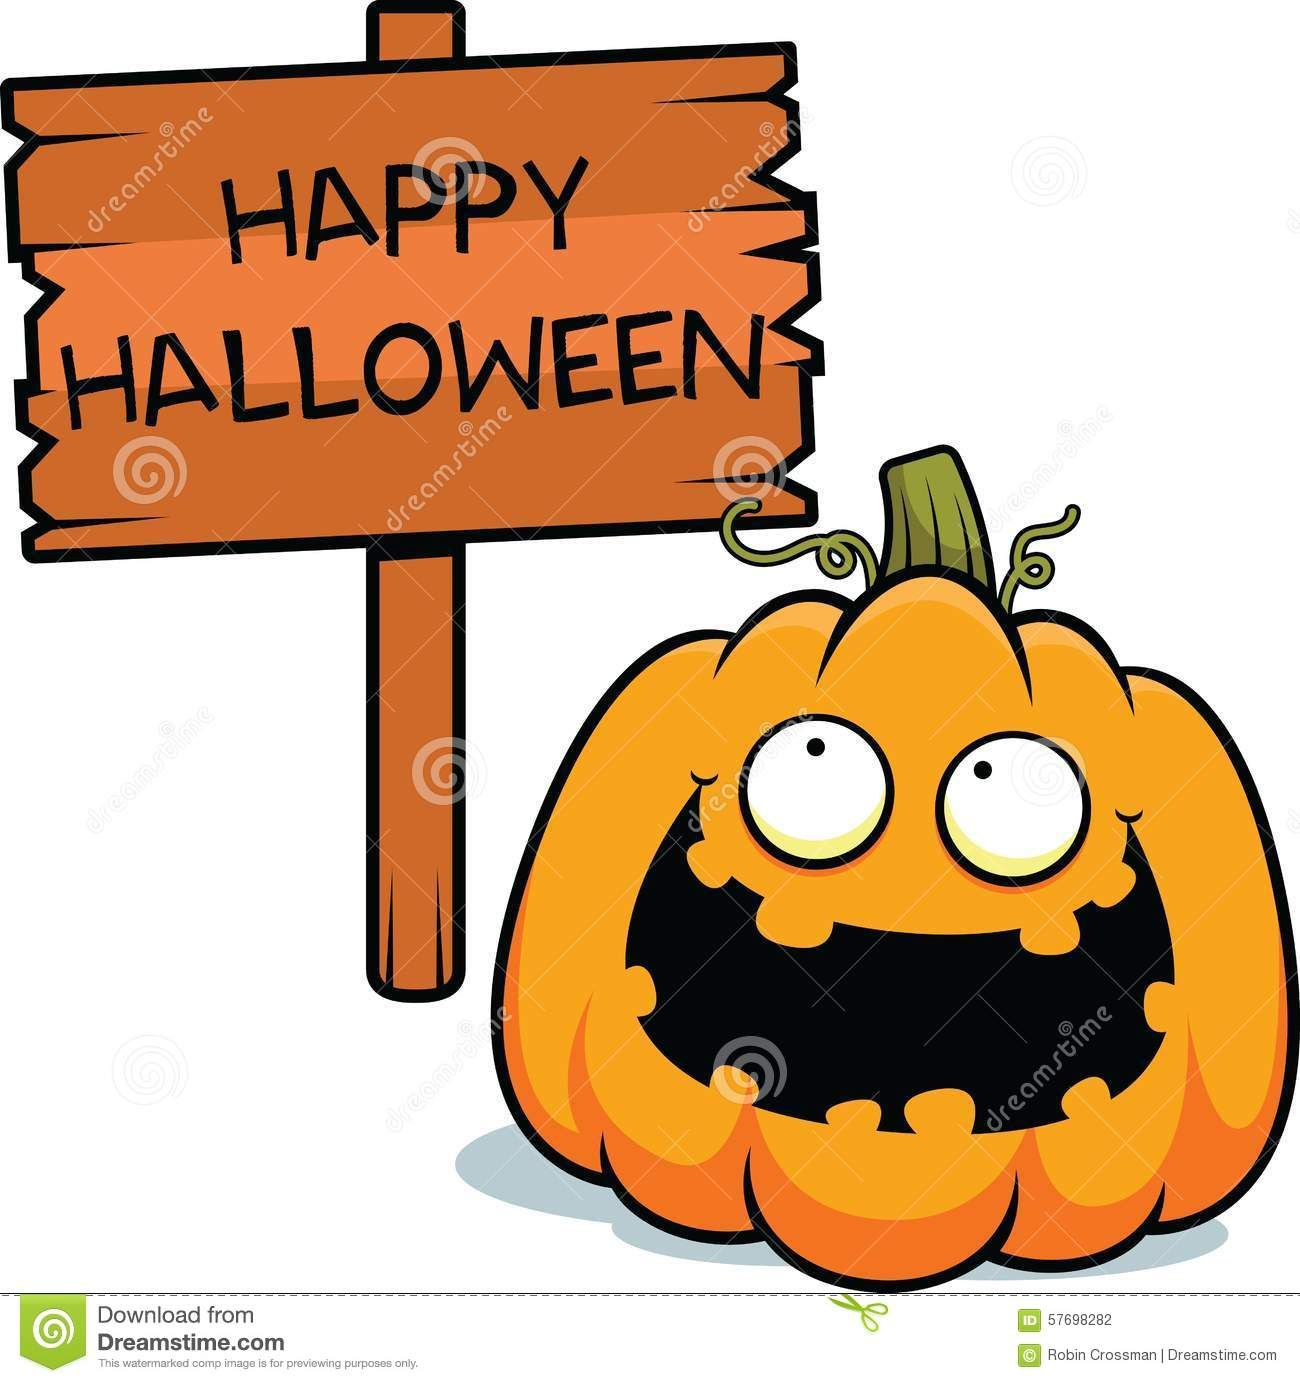 cartoonpumpkinhappyhalloweenillustrationsign57698282